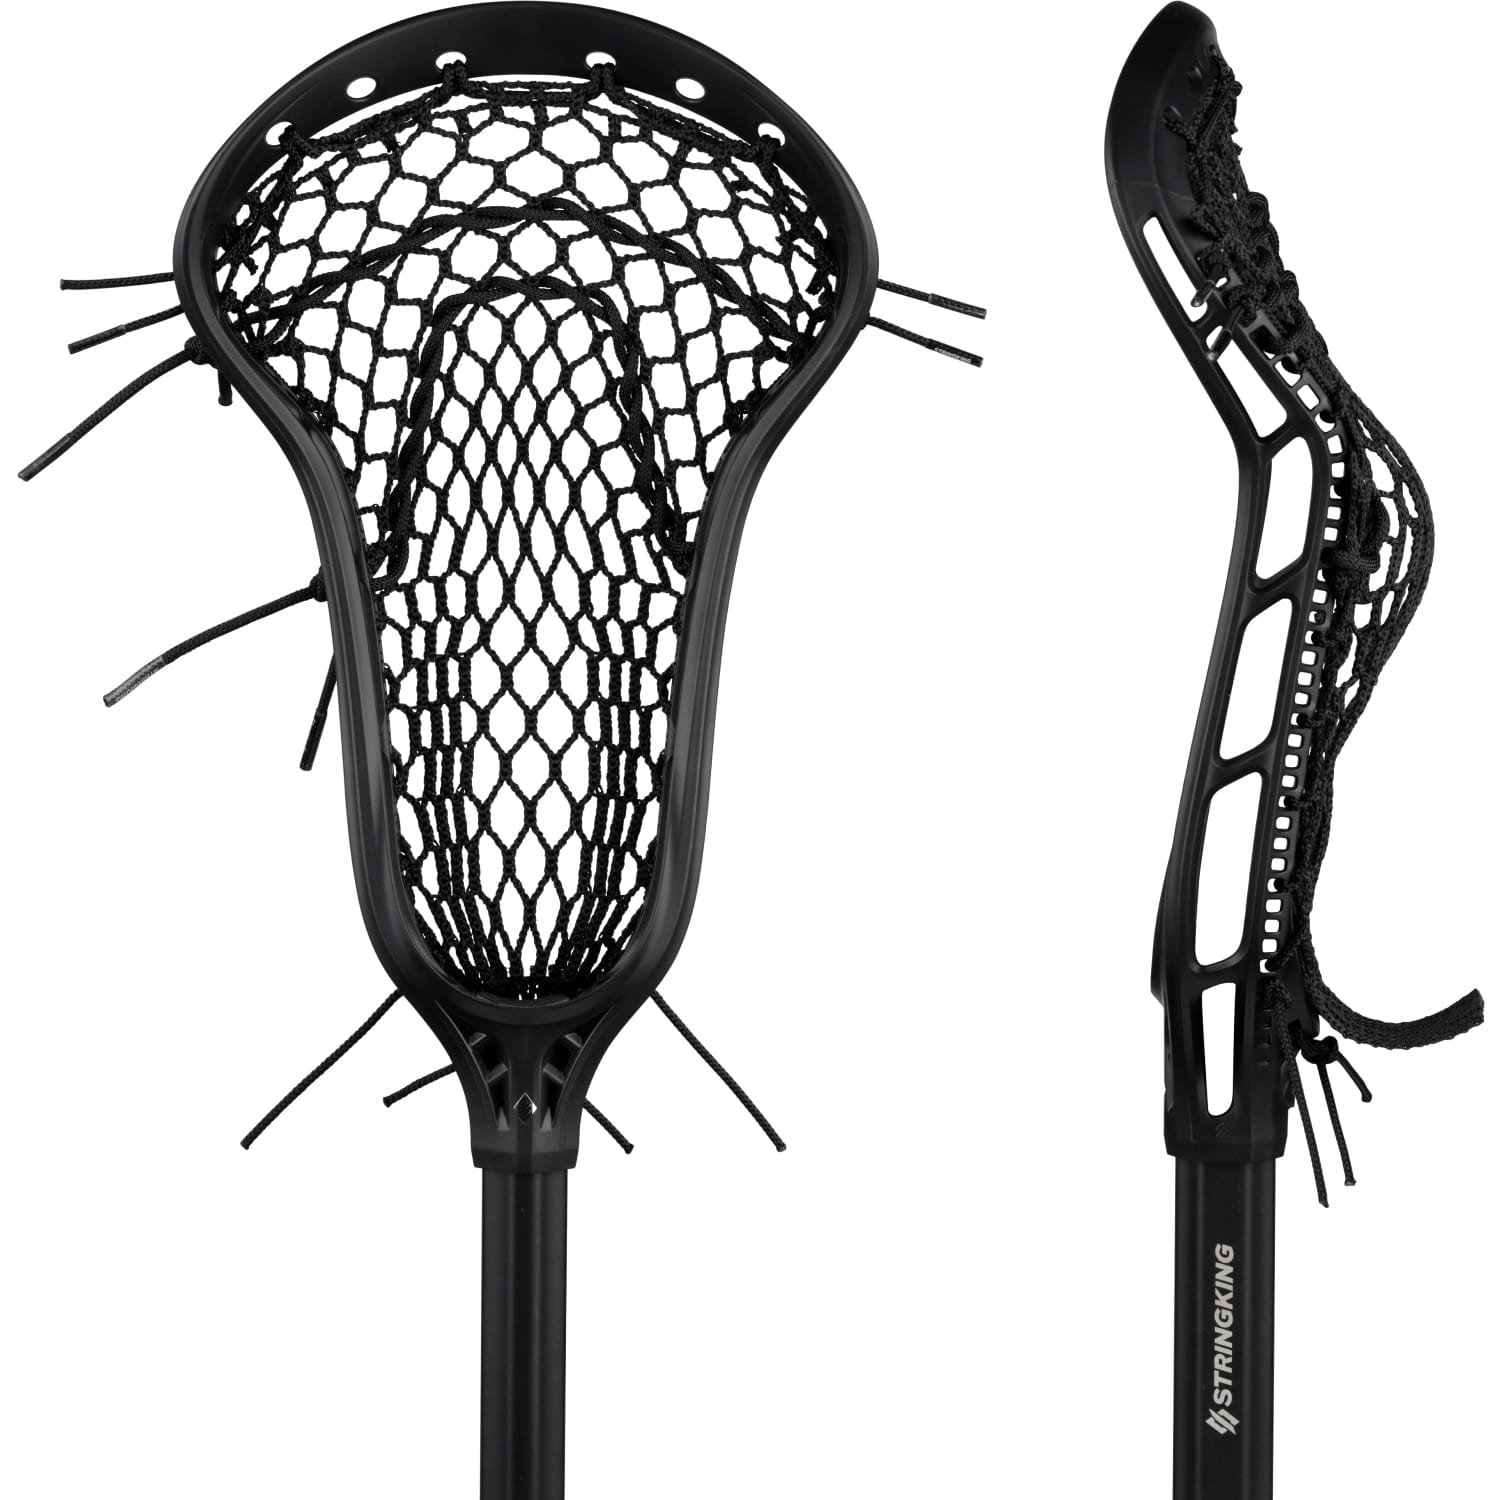 StringKing-Womens-Complete2Pro-Midfield-Front-Side-Strung-Black1500.jpg